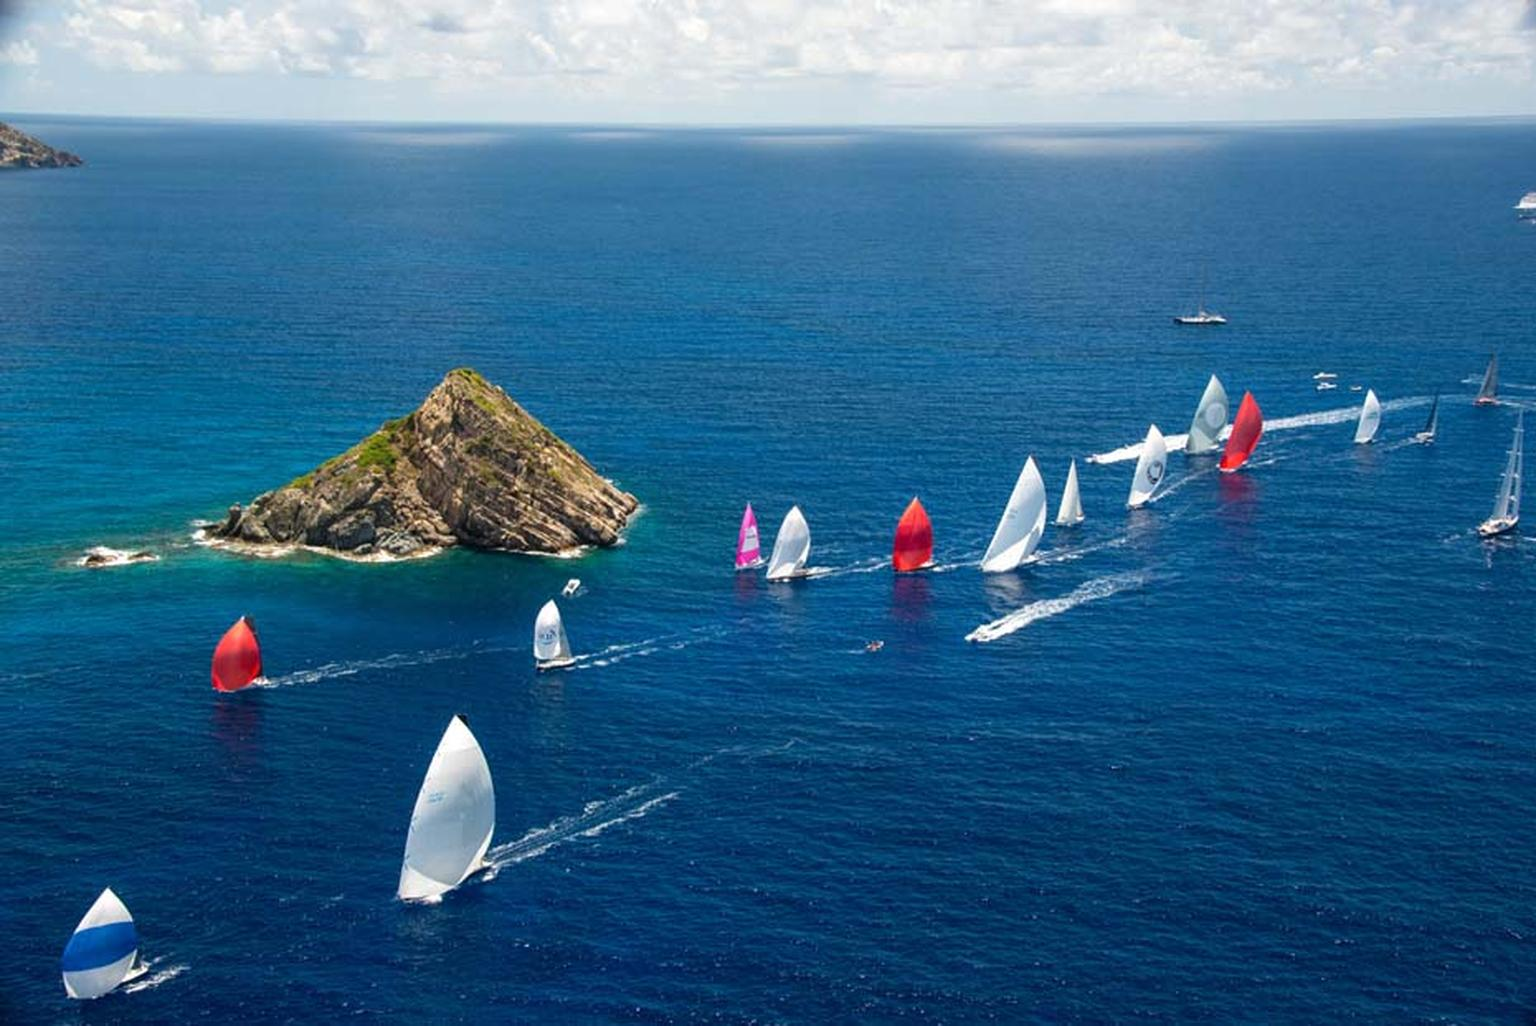 Maria Doulton joined the sailors aboard the 45ft sailing boat Jolt 2, captained by Peter Harrison, CEO of Richard Mille Europe, as it participated in the Les Voiles de Saint Barth 2014 regatta